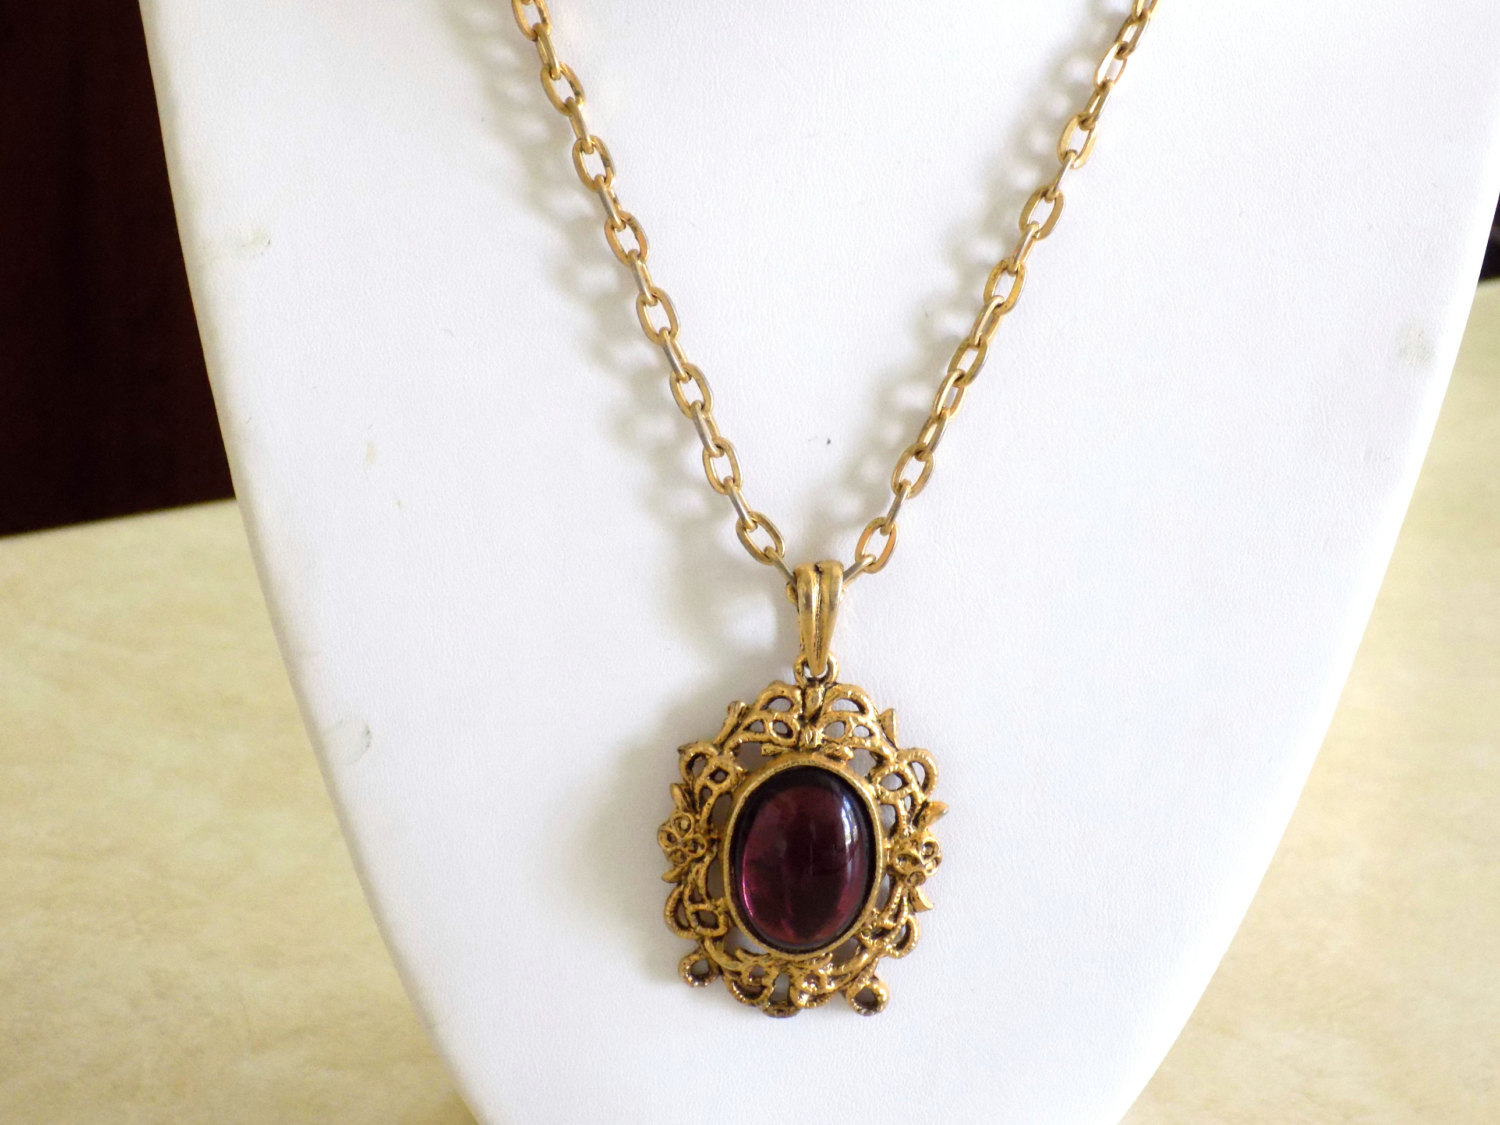 ON CLEARANCE: Vintage Gold Tone Pendant Necklace with Amethyst Oval Cabochon Pen